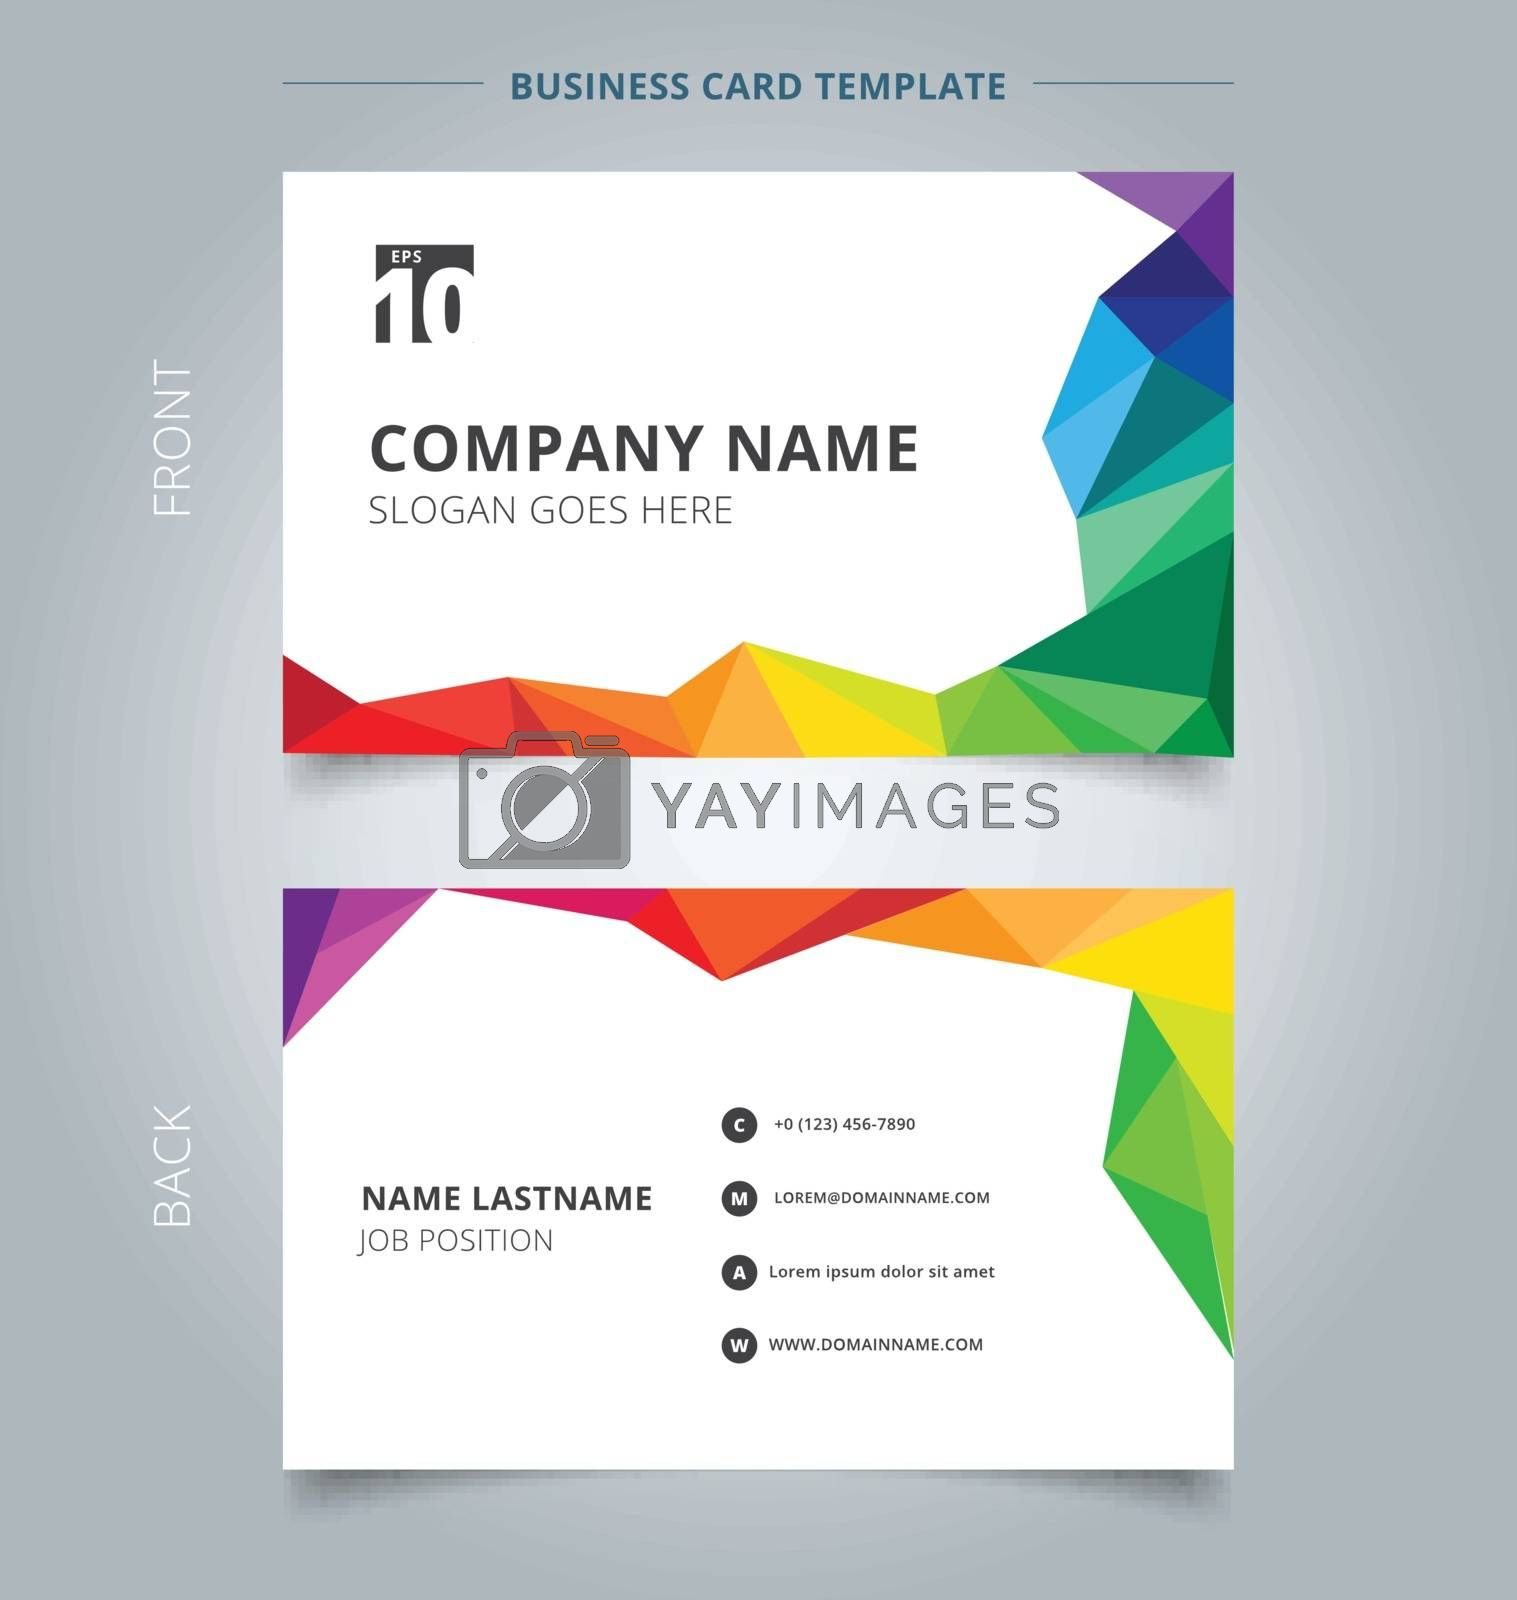 Business name card template design abstract colorful low polygon style on white background. Vector illustration